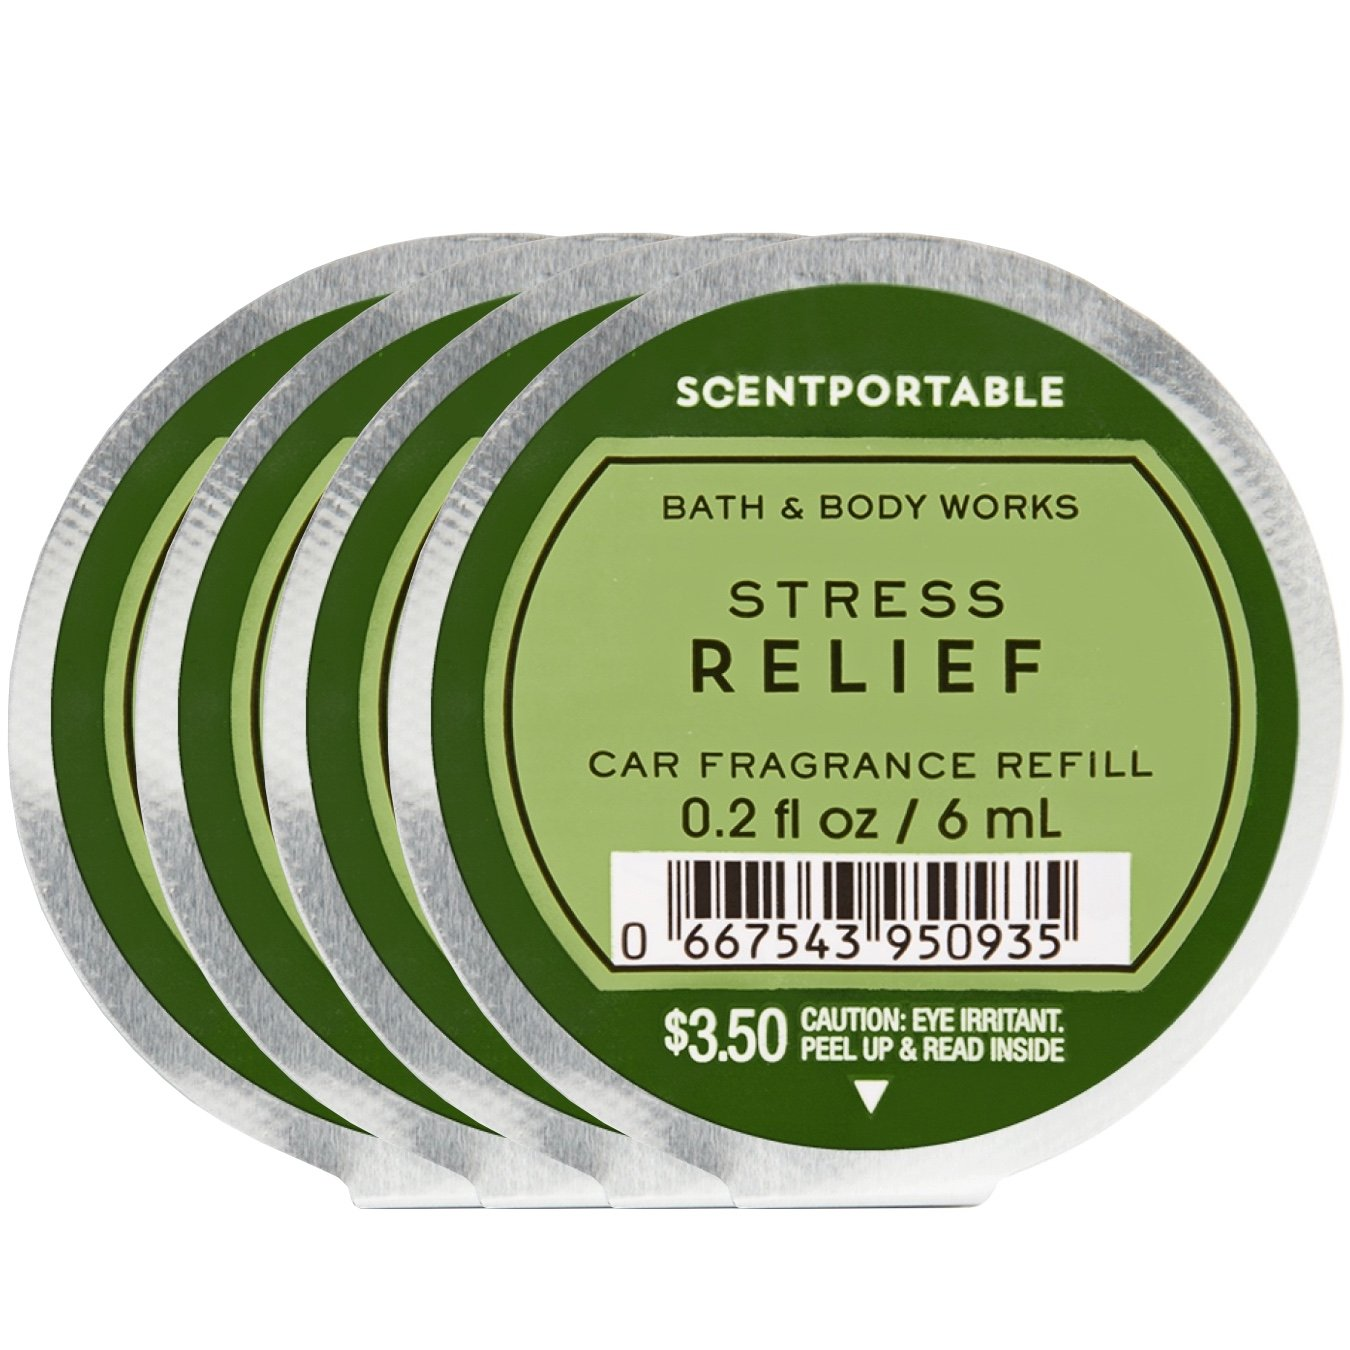 Bath and Body Works 4 Pack Scentportable Fragrance Refill Stress Relief Eucalyptus Spearmint. 0.2 Oz each.